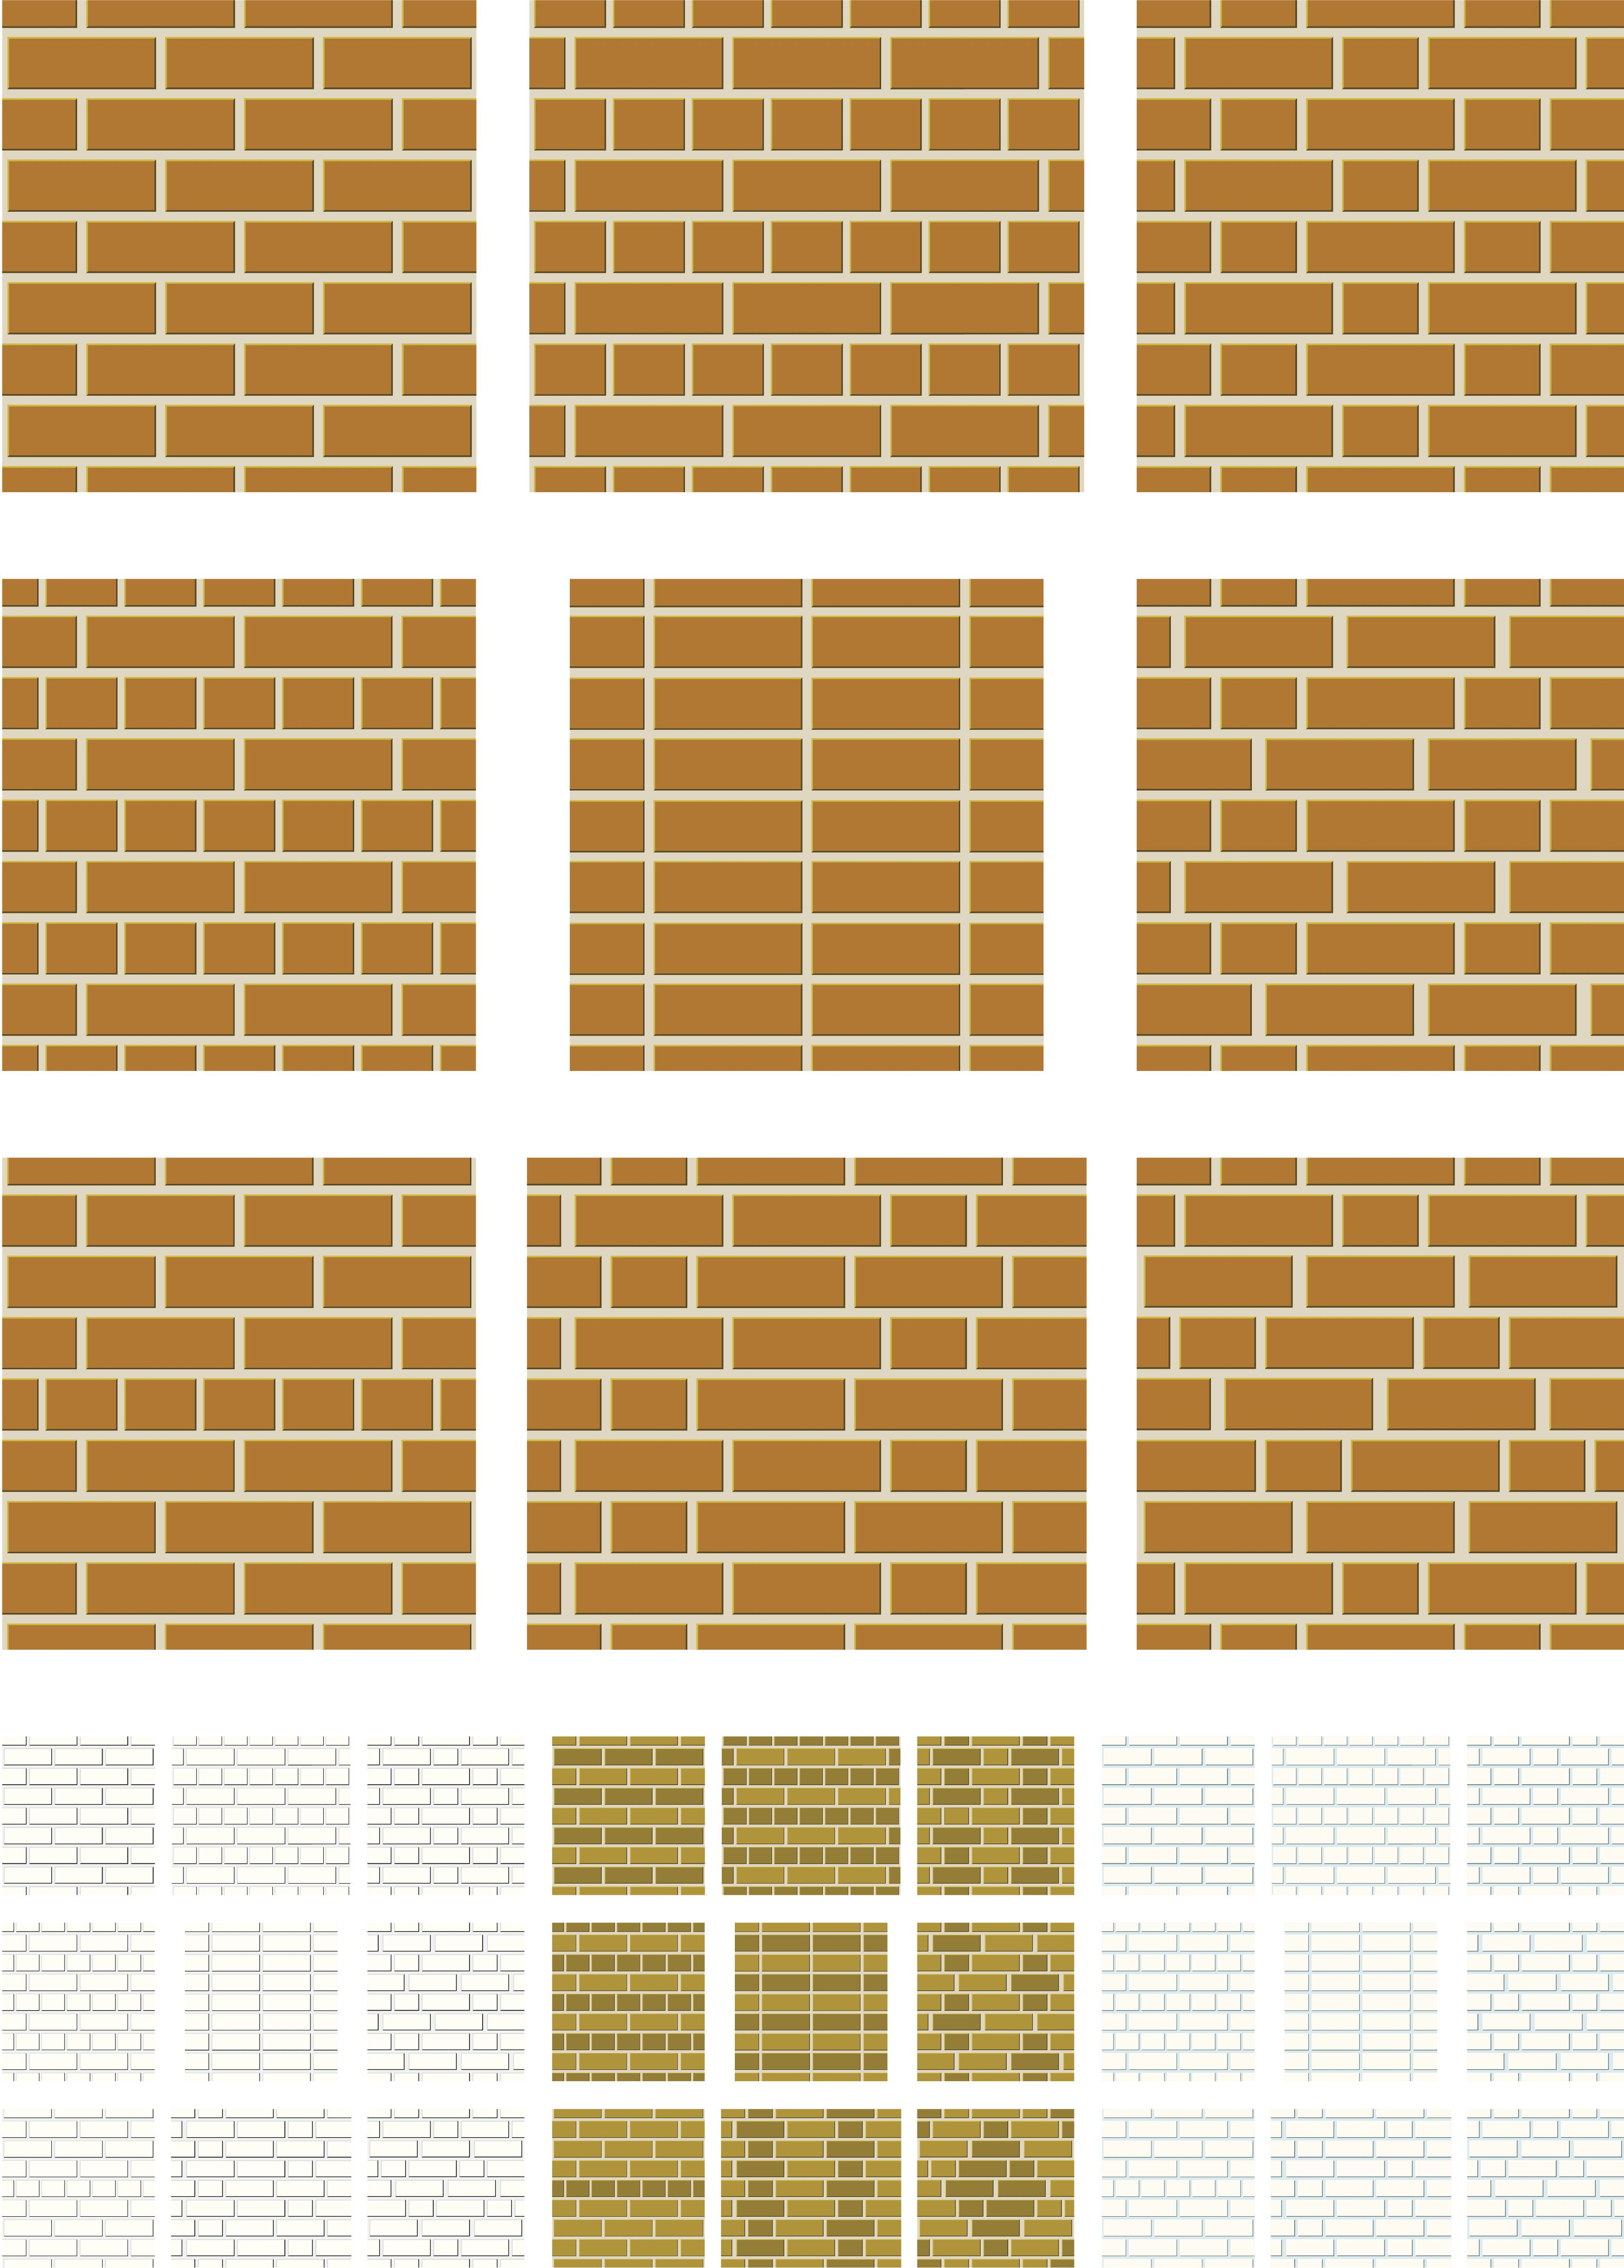 the basic brick patterns for patios and paths